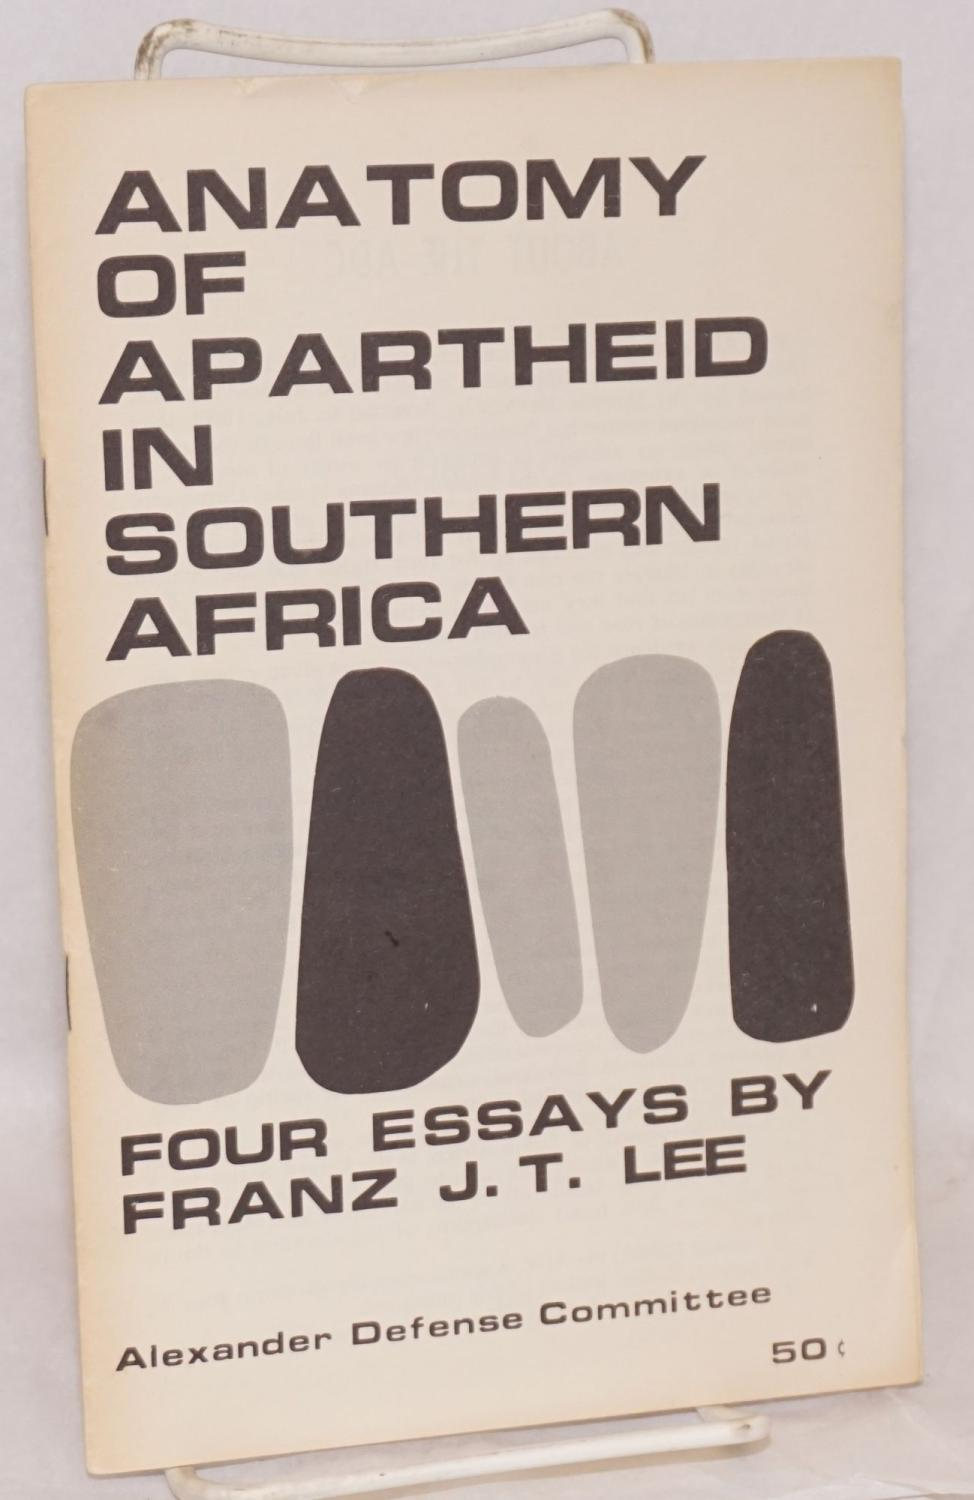 Health Care Essays The Anatomy Of Apartheid In Southern Africa Four Essays Lee Franz J T Essay Writing Thesis Statement also English Language Essay The Anatomy Of Apartheid In Southern Africa Four Essays By Lee  How To Write A Proposal Essay Example